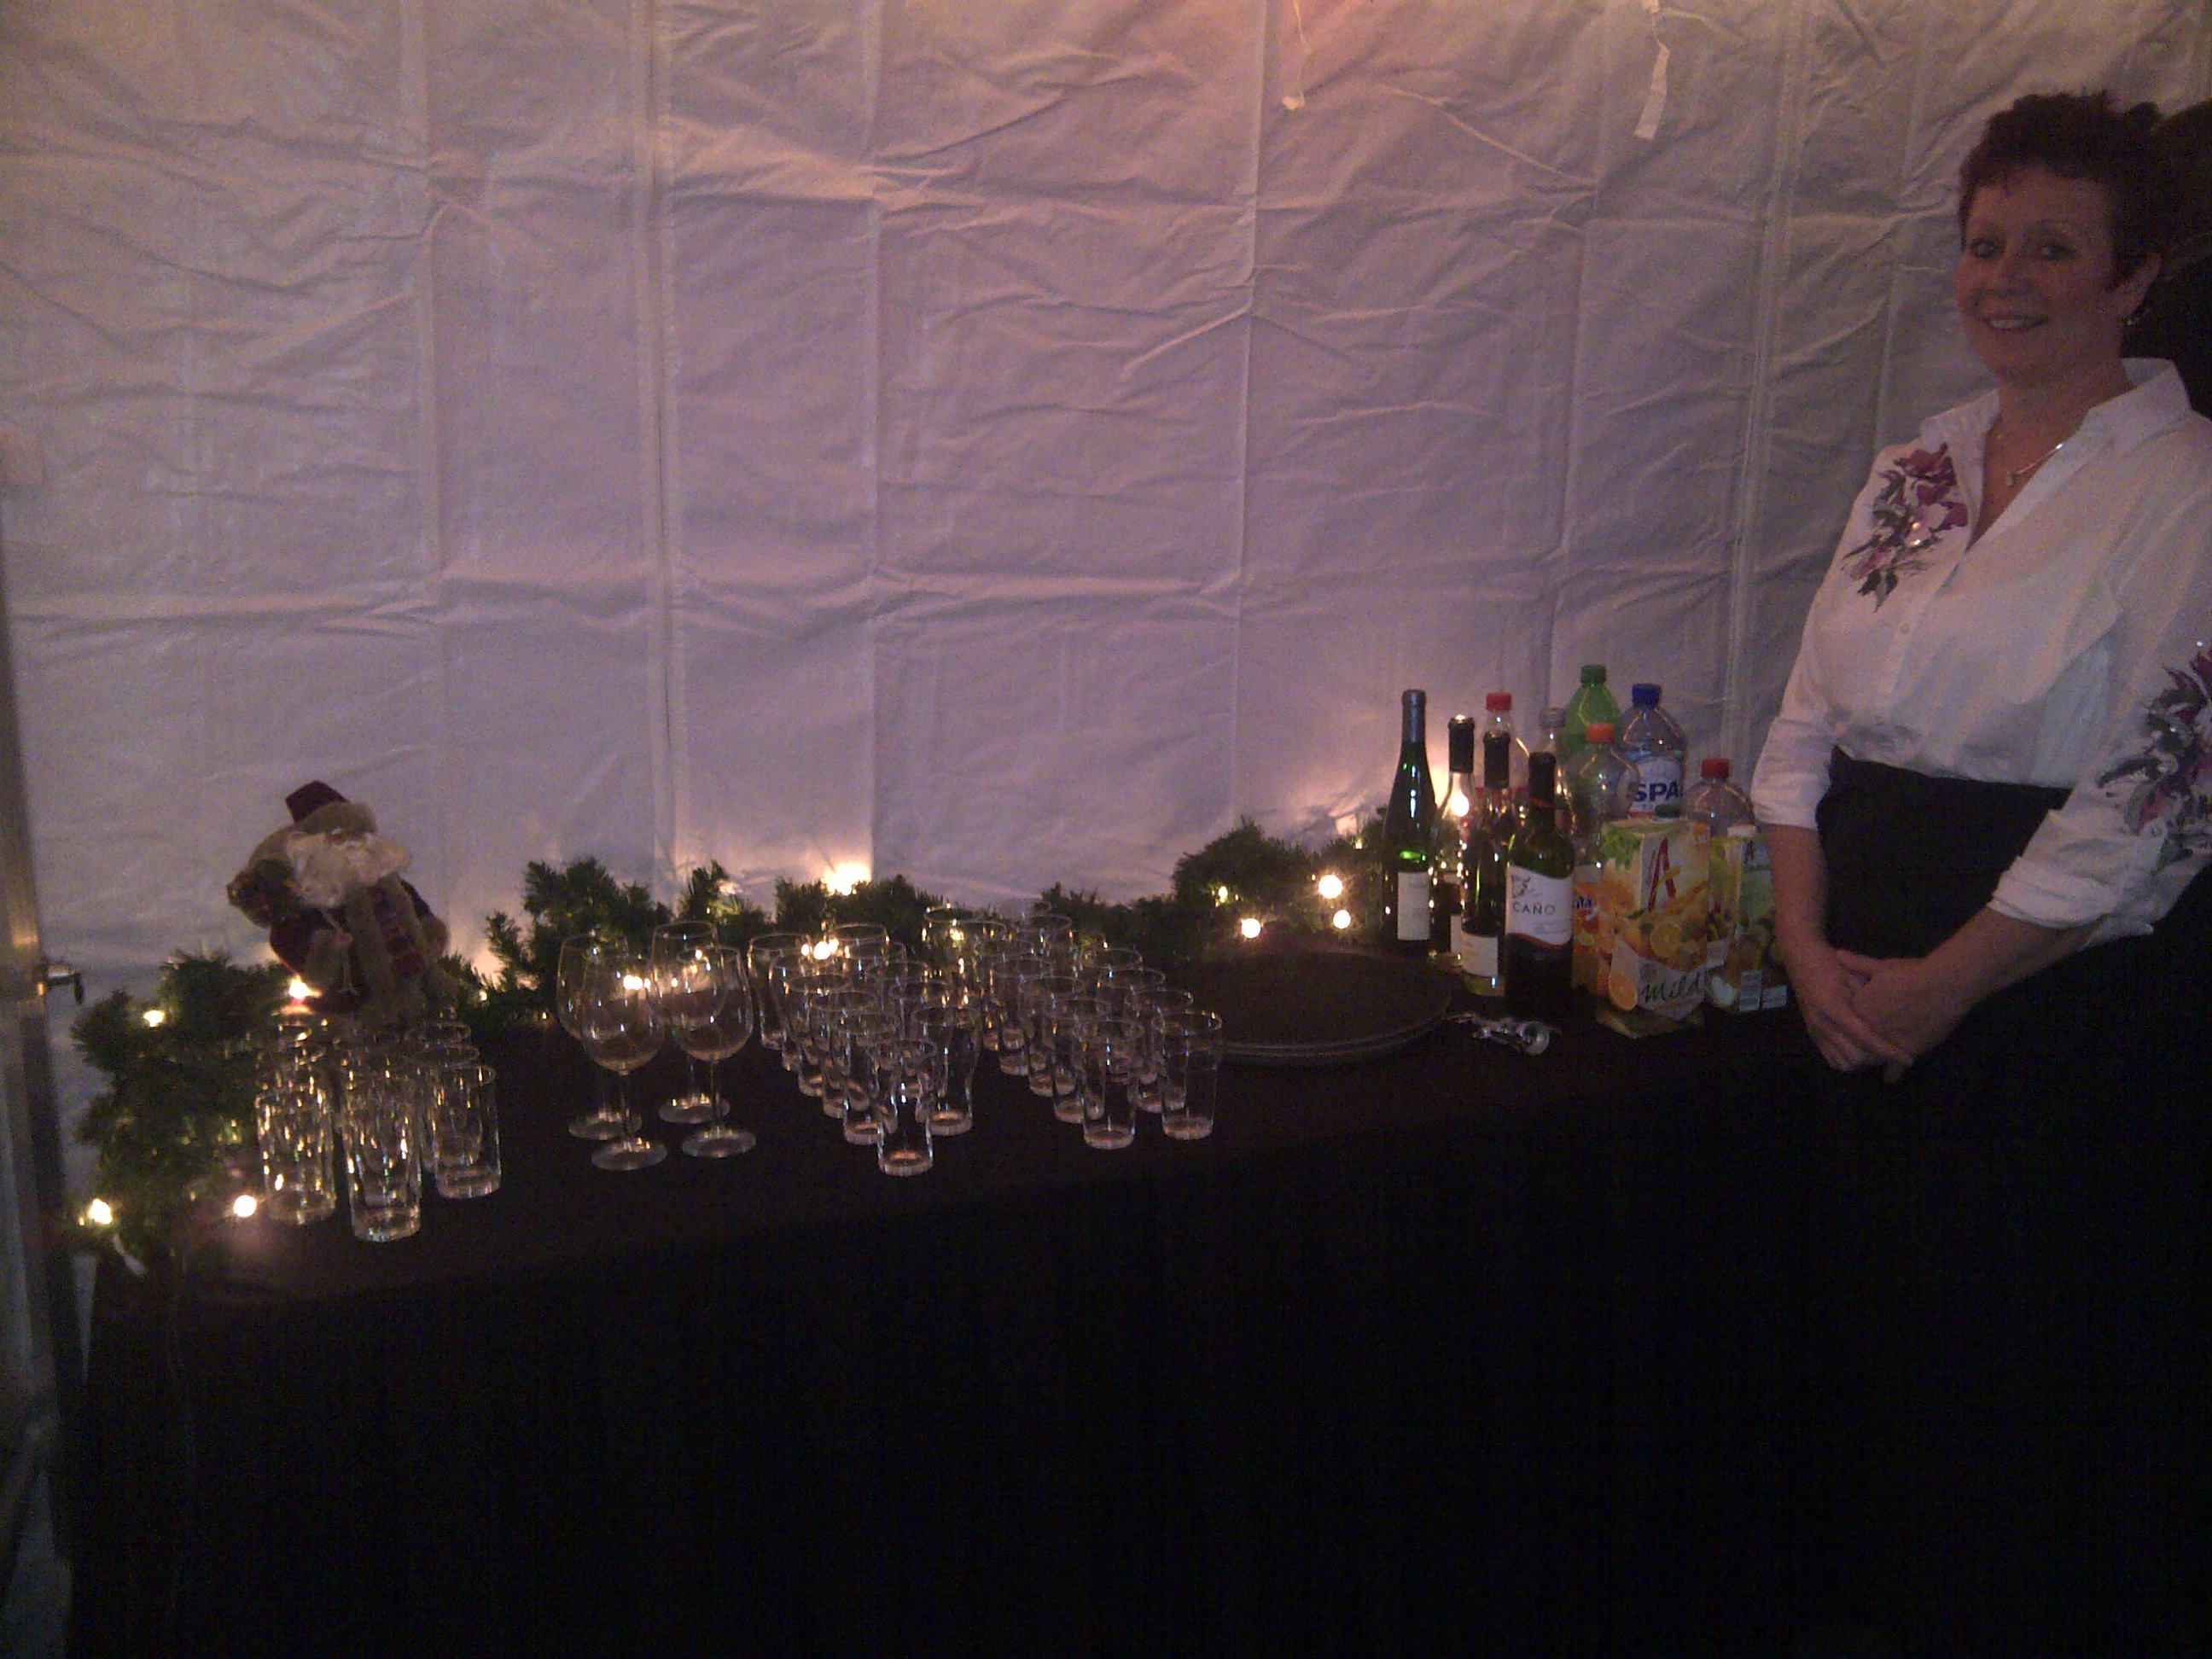 Partytent Zwolle Corporate Match Zwolle 13-12-2012 » Mijnpartyservice